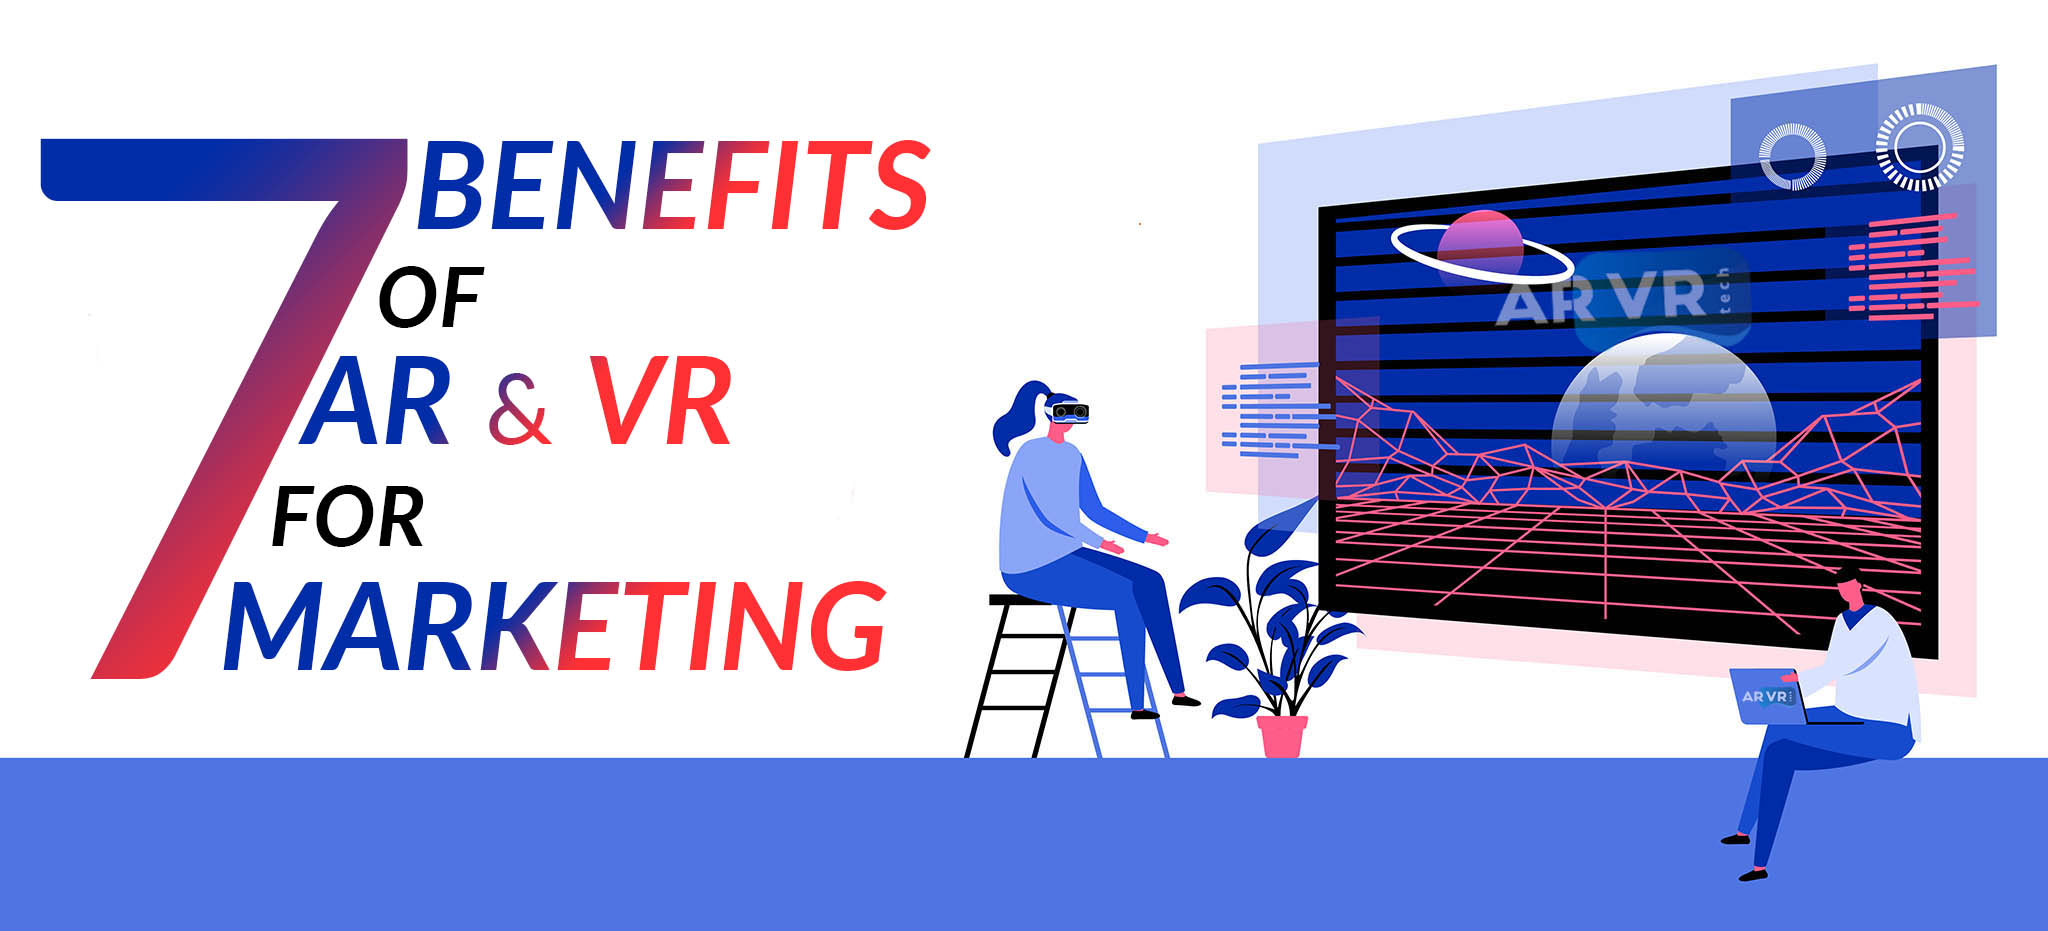 7 Benefits of AR & VR for Marketing